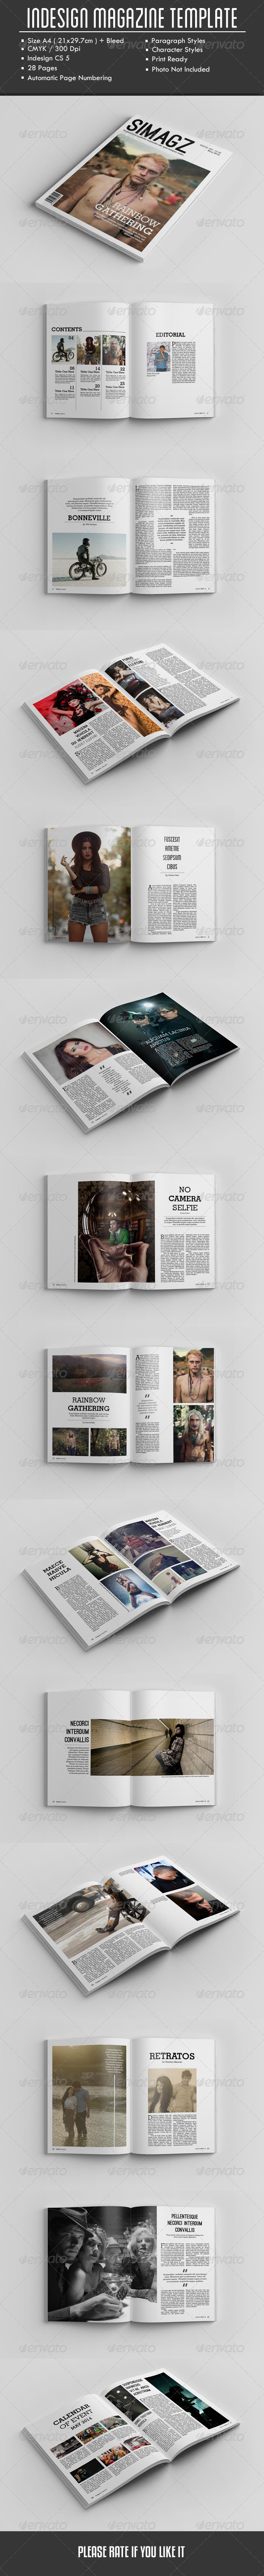 GraphicRiver InDesign Magazine Template 7752615